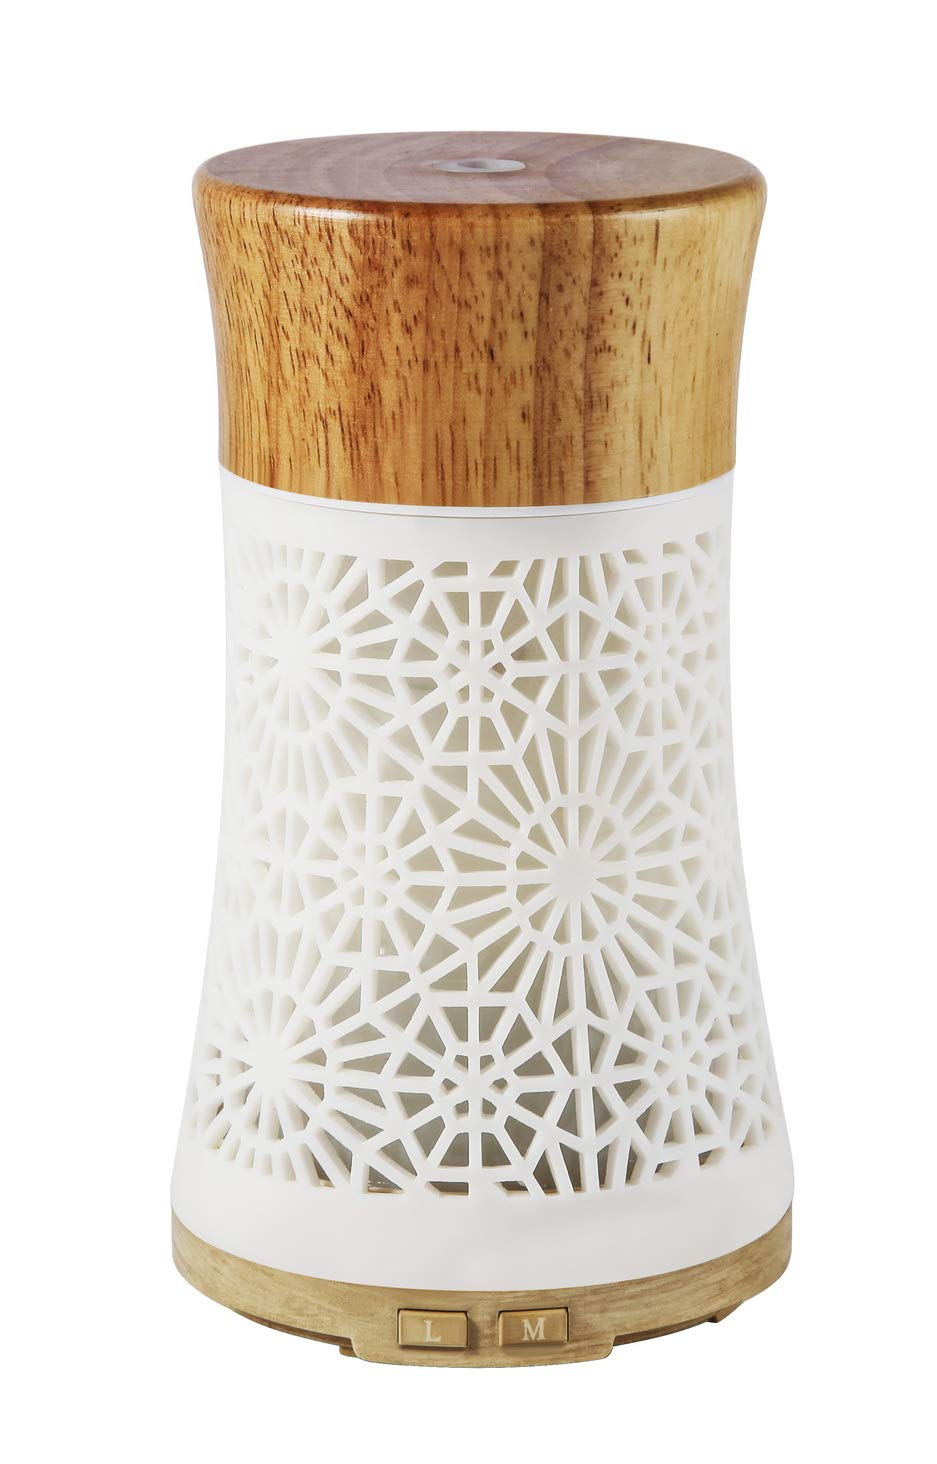 Anthun Essential Oil Diffusers,120ml Fragrant Room Sprays Ultrasonic Aroma Mist Atomizer BPA-Free, Waterless Auto-Off, 7 Color LED Lights for Office Home Bedroom Living Room Study Yoga Spa-Wooden Lid